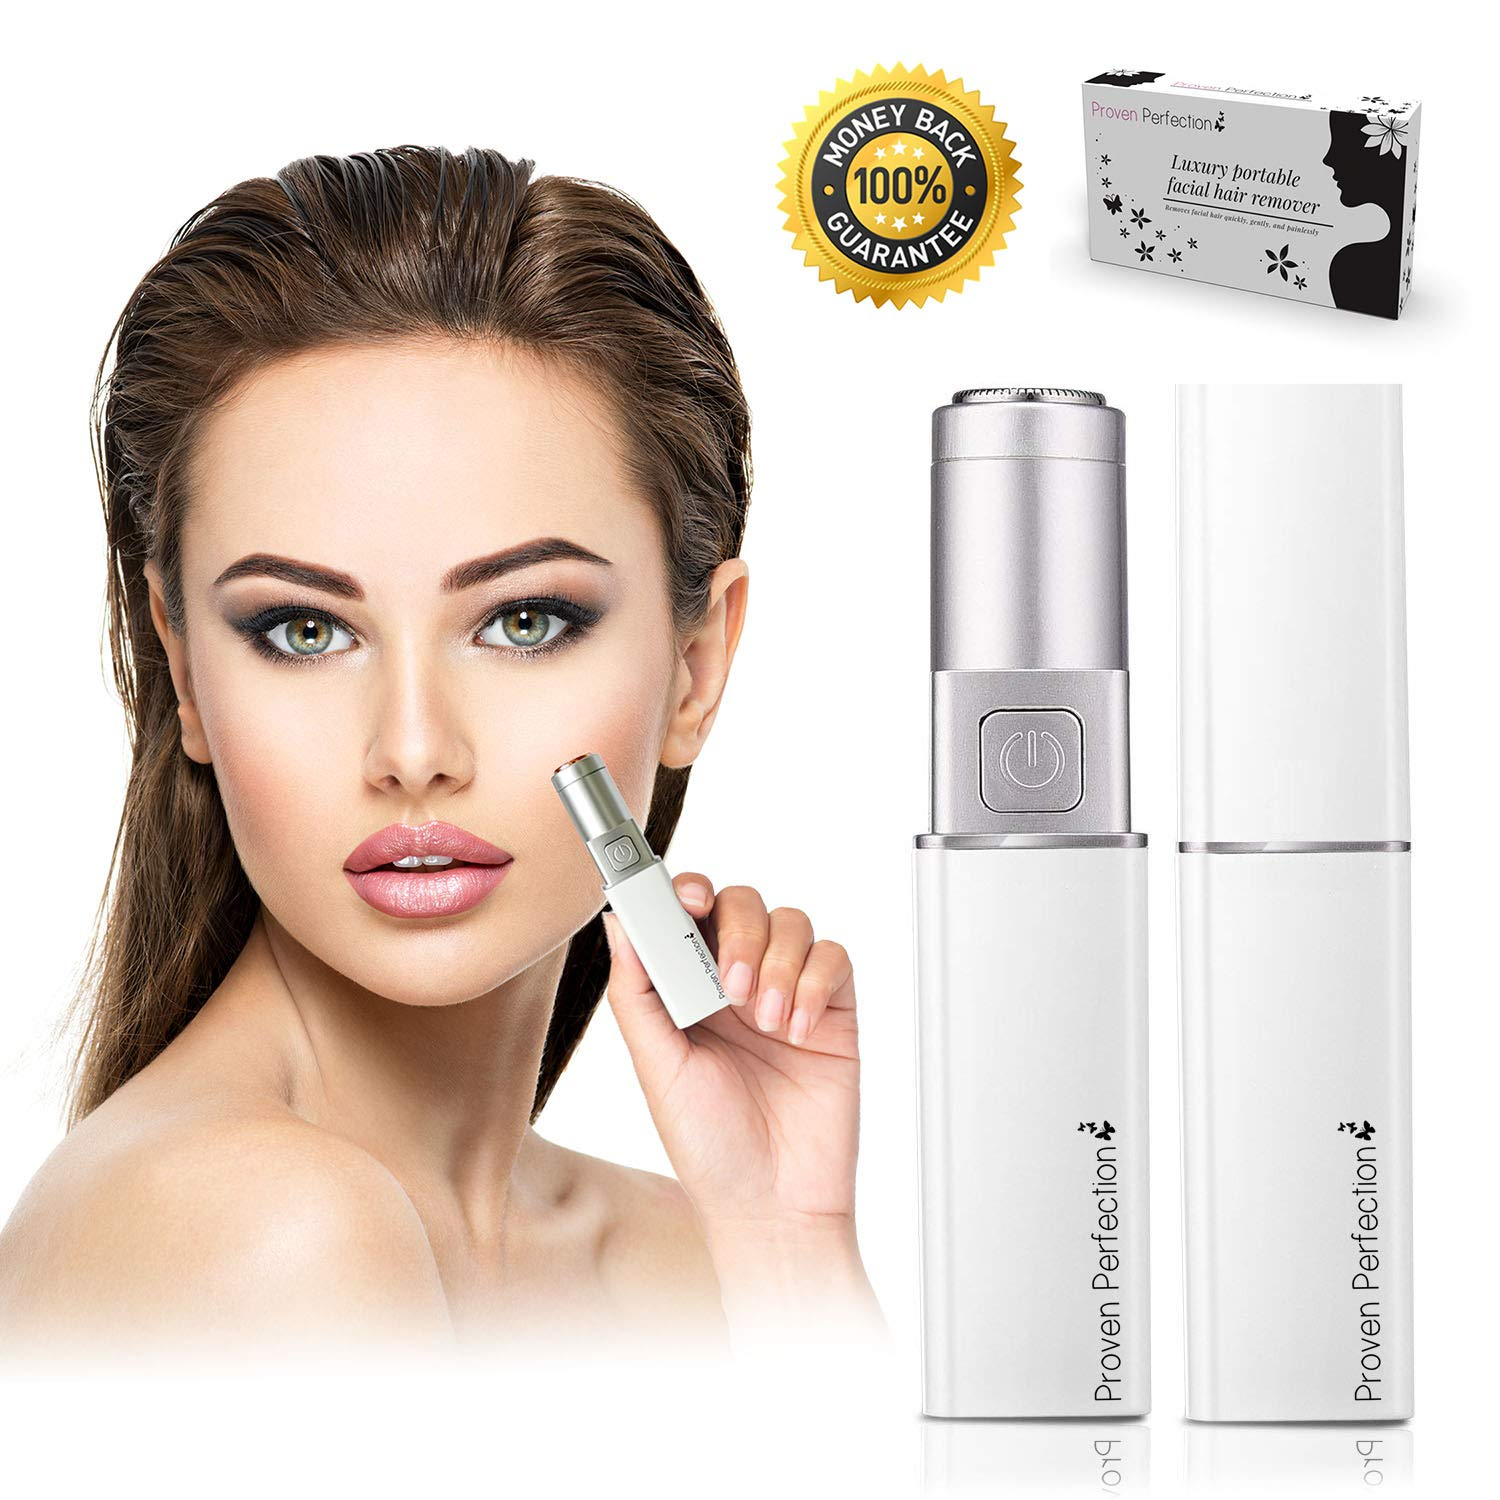 Women's Facial Hair Remover – Luxury Portable Ladies Facial Hair Trimmer for Painless, Flawless & Effective Removal of Peach Fuzz, Chin and Upper Lip Hair – Battery Operated – UK Brand (White Silver) ProvenPerfection